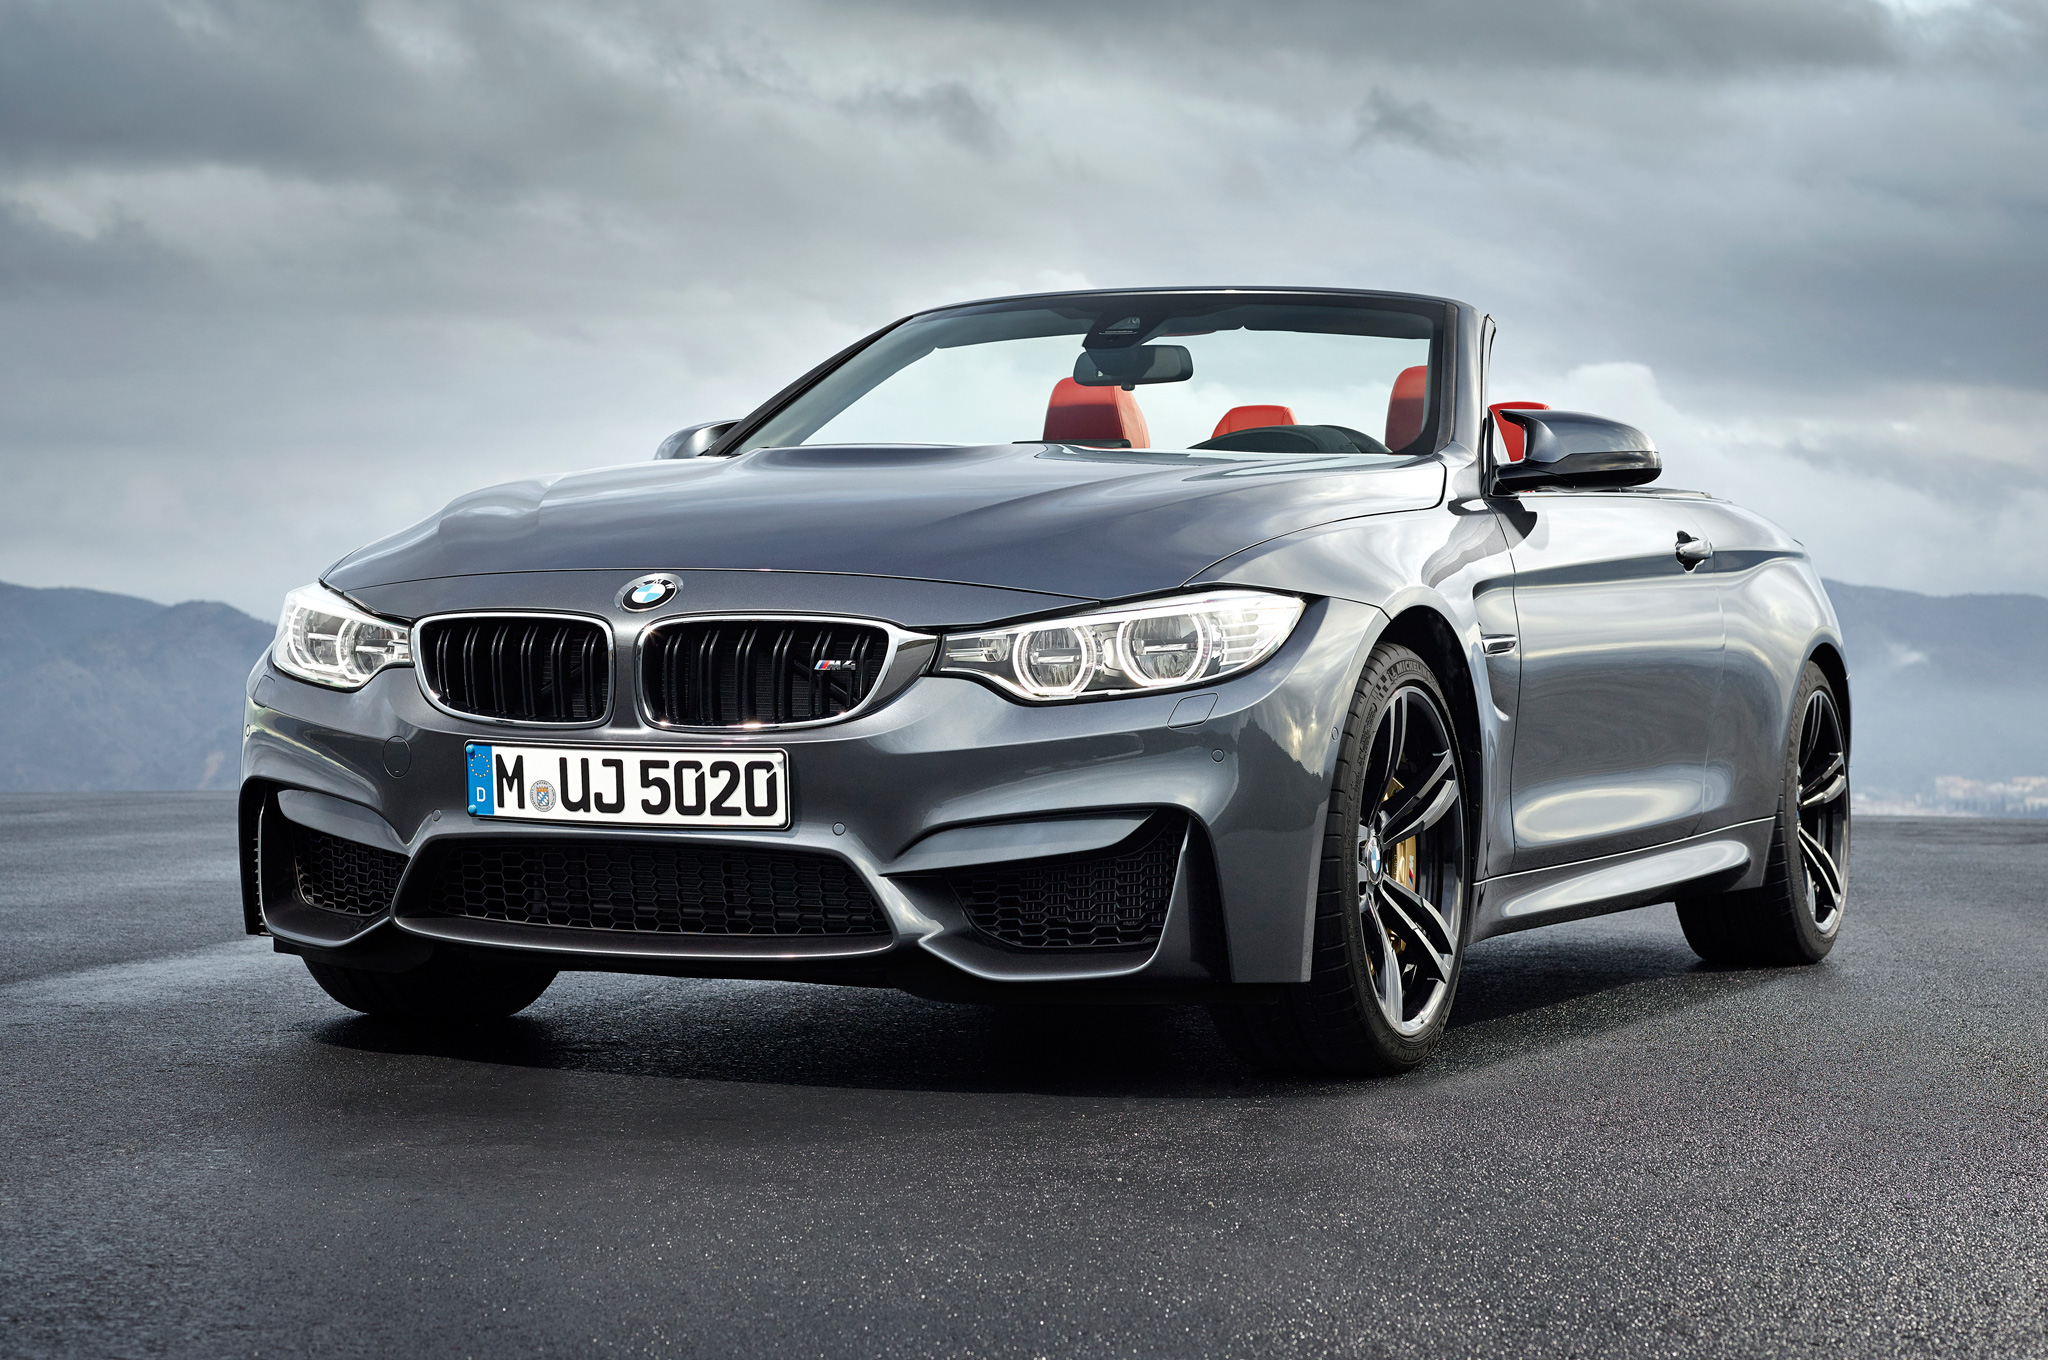 2015 Bmw M4 Convertible Front Side Photo (Photo 37 of 50)